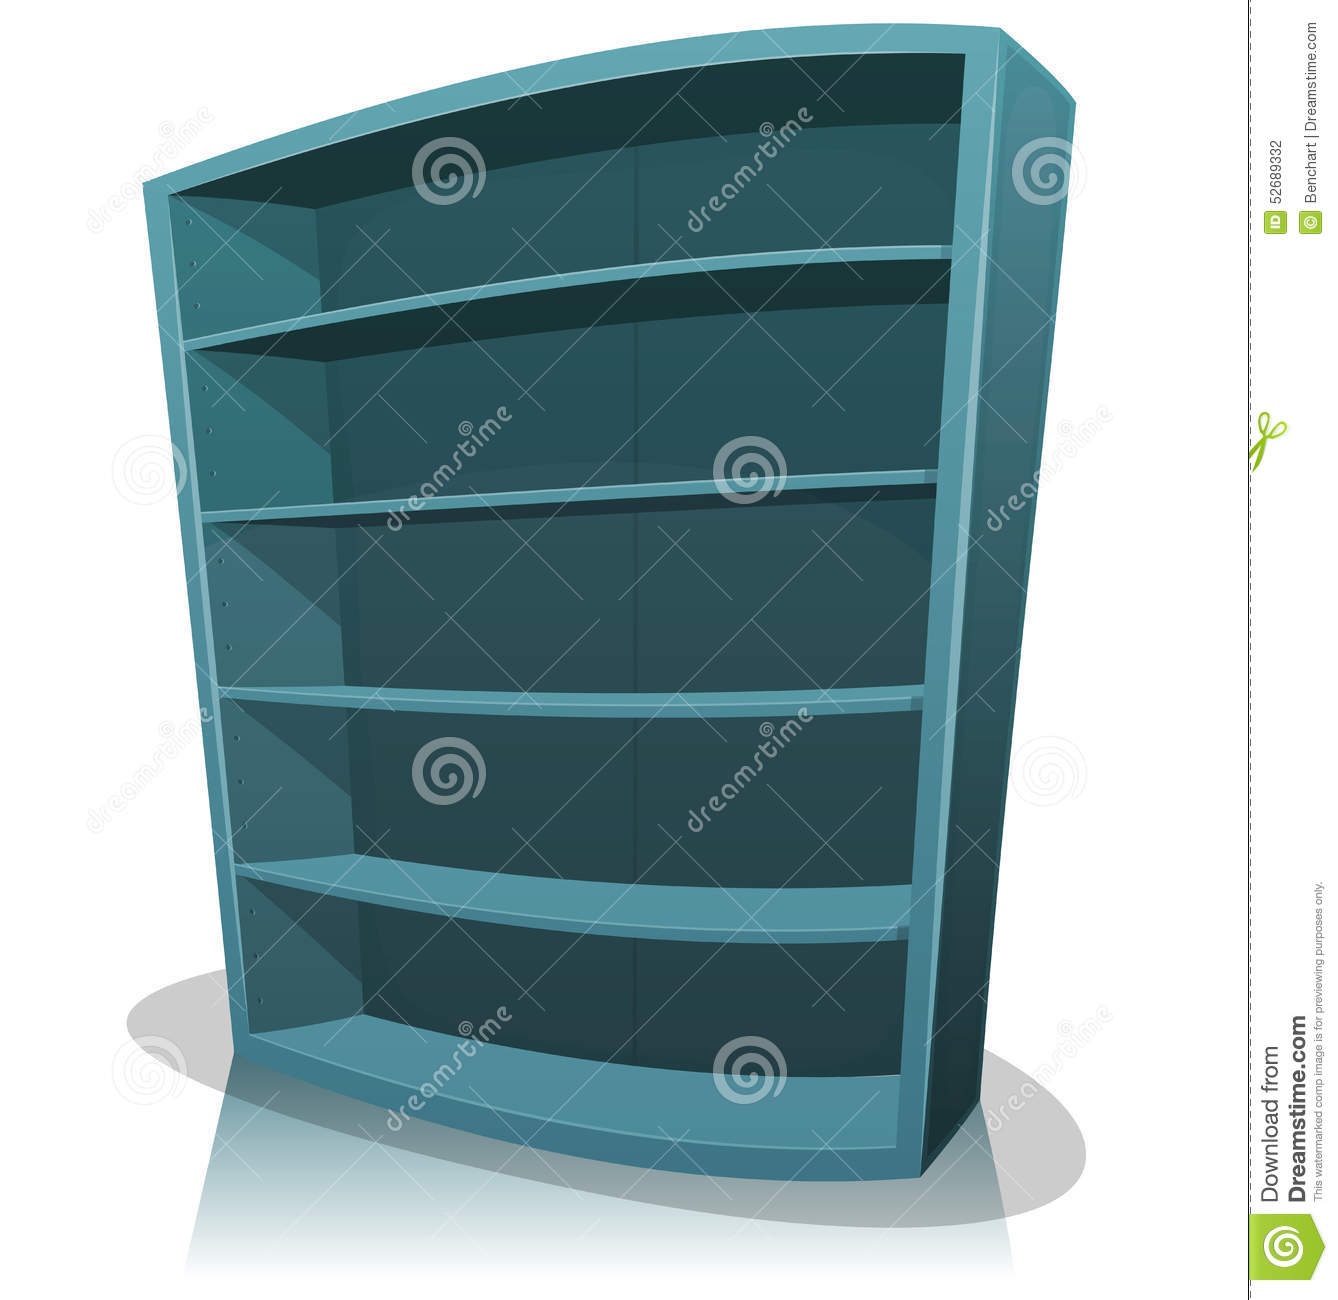 Cartoon Empty Library Bookshelf Stock Vector  Image 52689332